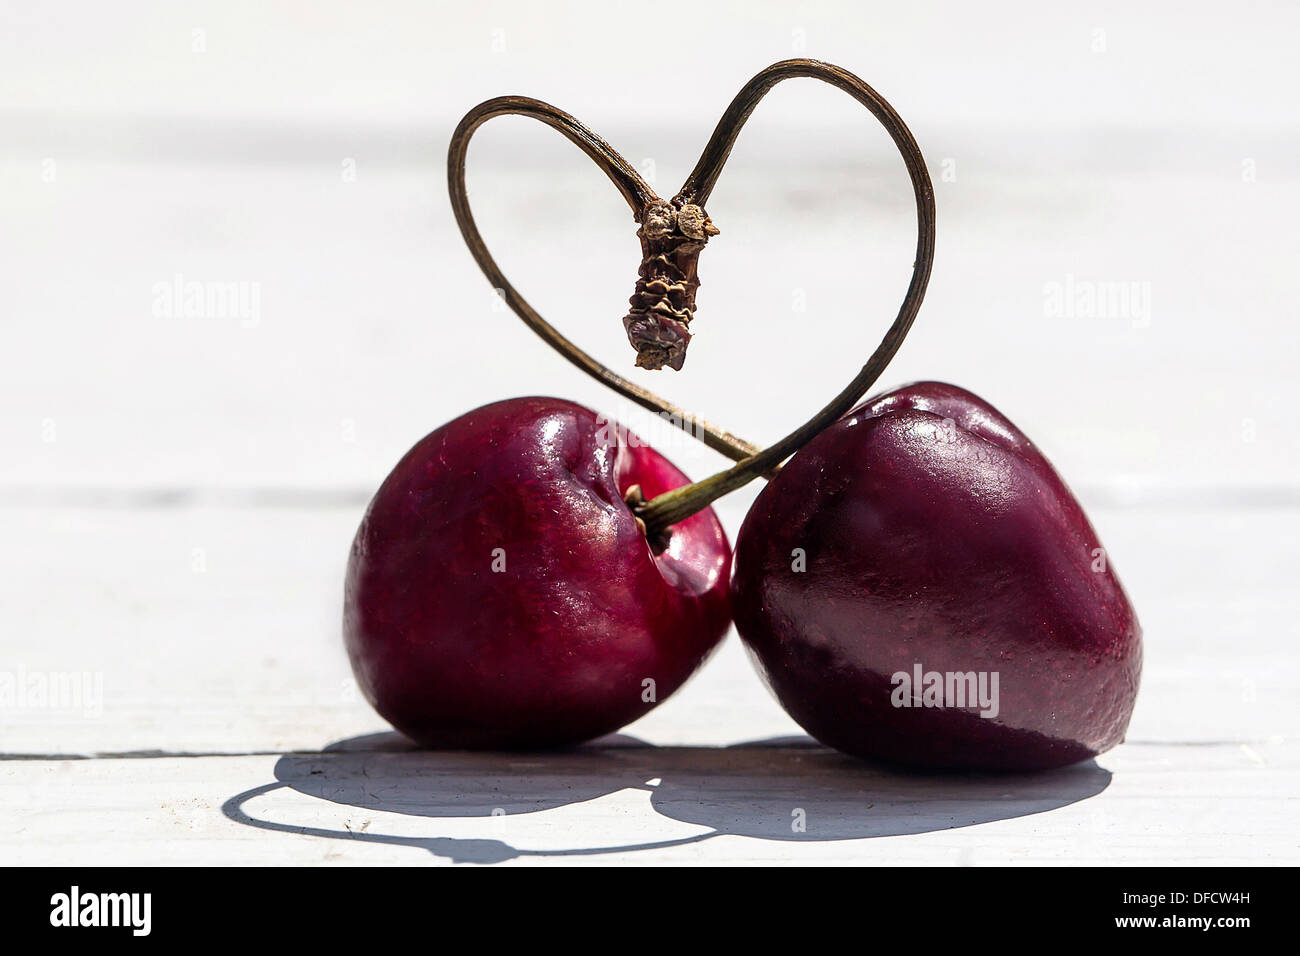 Germany, Bavaria, Heart shaped formed with stems of cherry - Stock Image